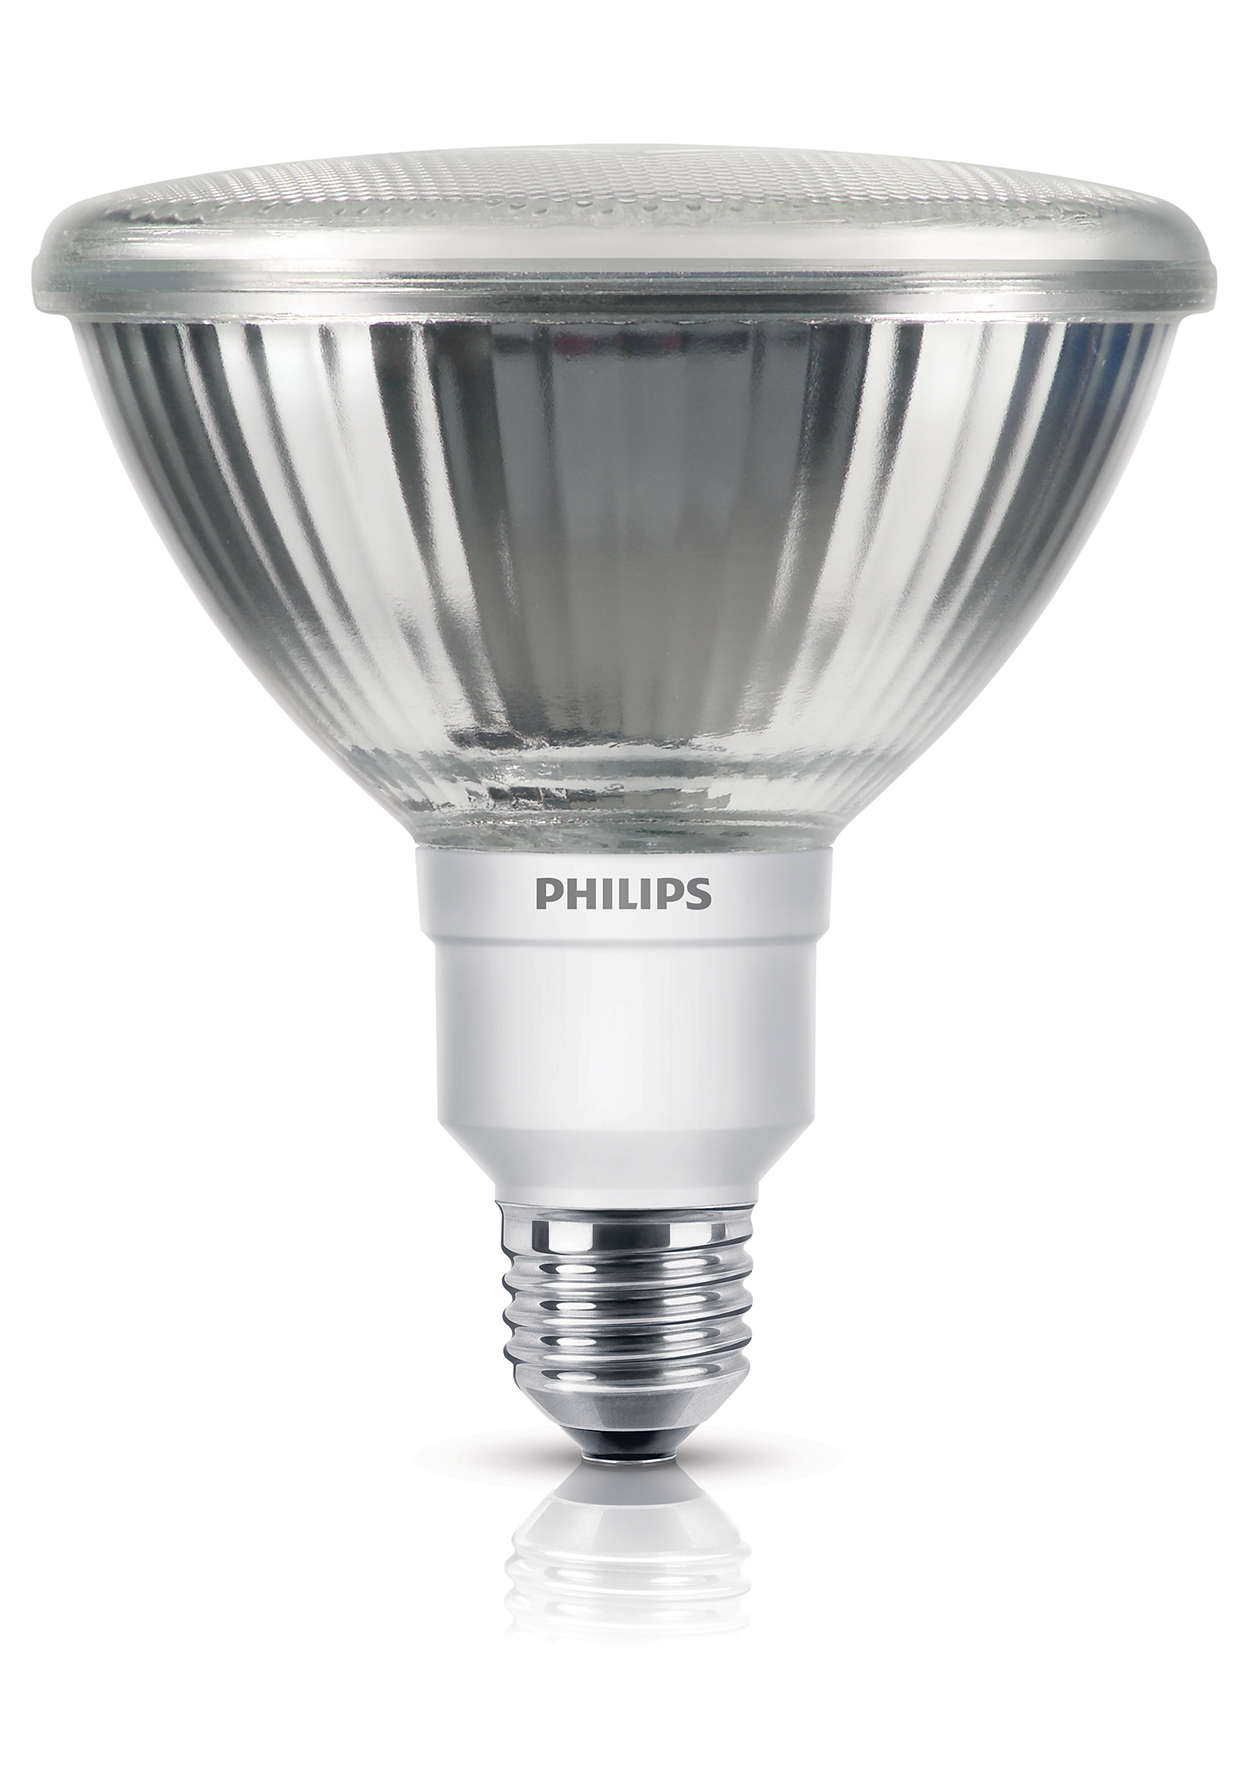 Energy-saving technology in a directional lamp